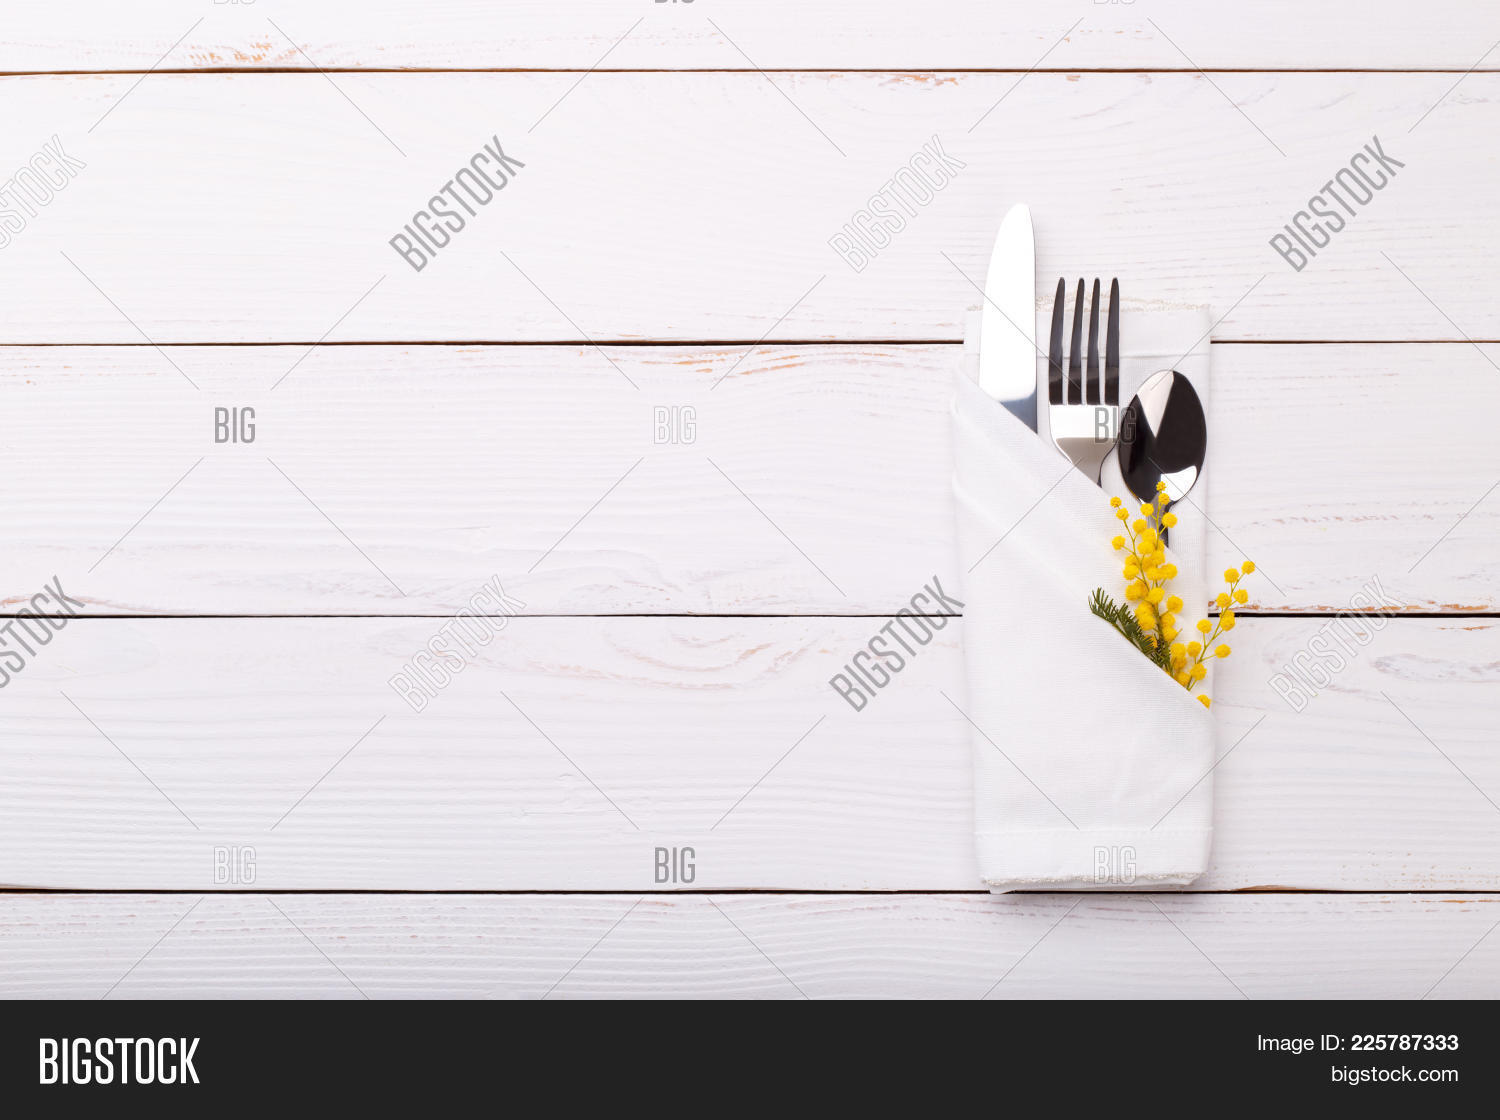 anniversary,background,banquet,birthday,blossom,brunch,card,catering,celebration,copy,cutlery,day,decoration,dining,dinner,dish,easter,eat,event,festive,floral,flower,fork,holiday,invitation,mimosa,mothers,napkin,party,place,plate,season,seasonal,setting,silver,spring,springtime,summer,table,tableware,tag,wedding,wood,yellow